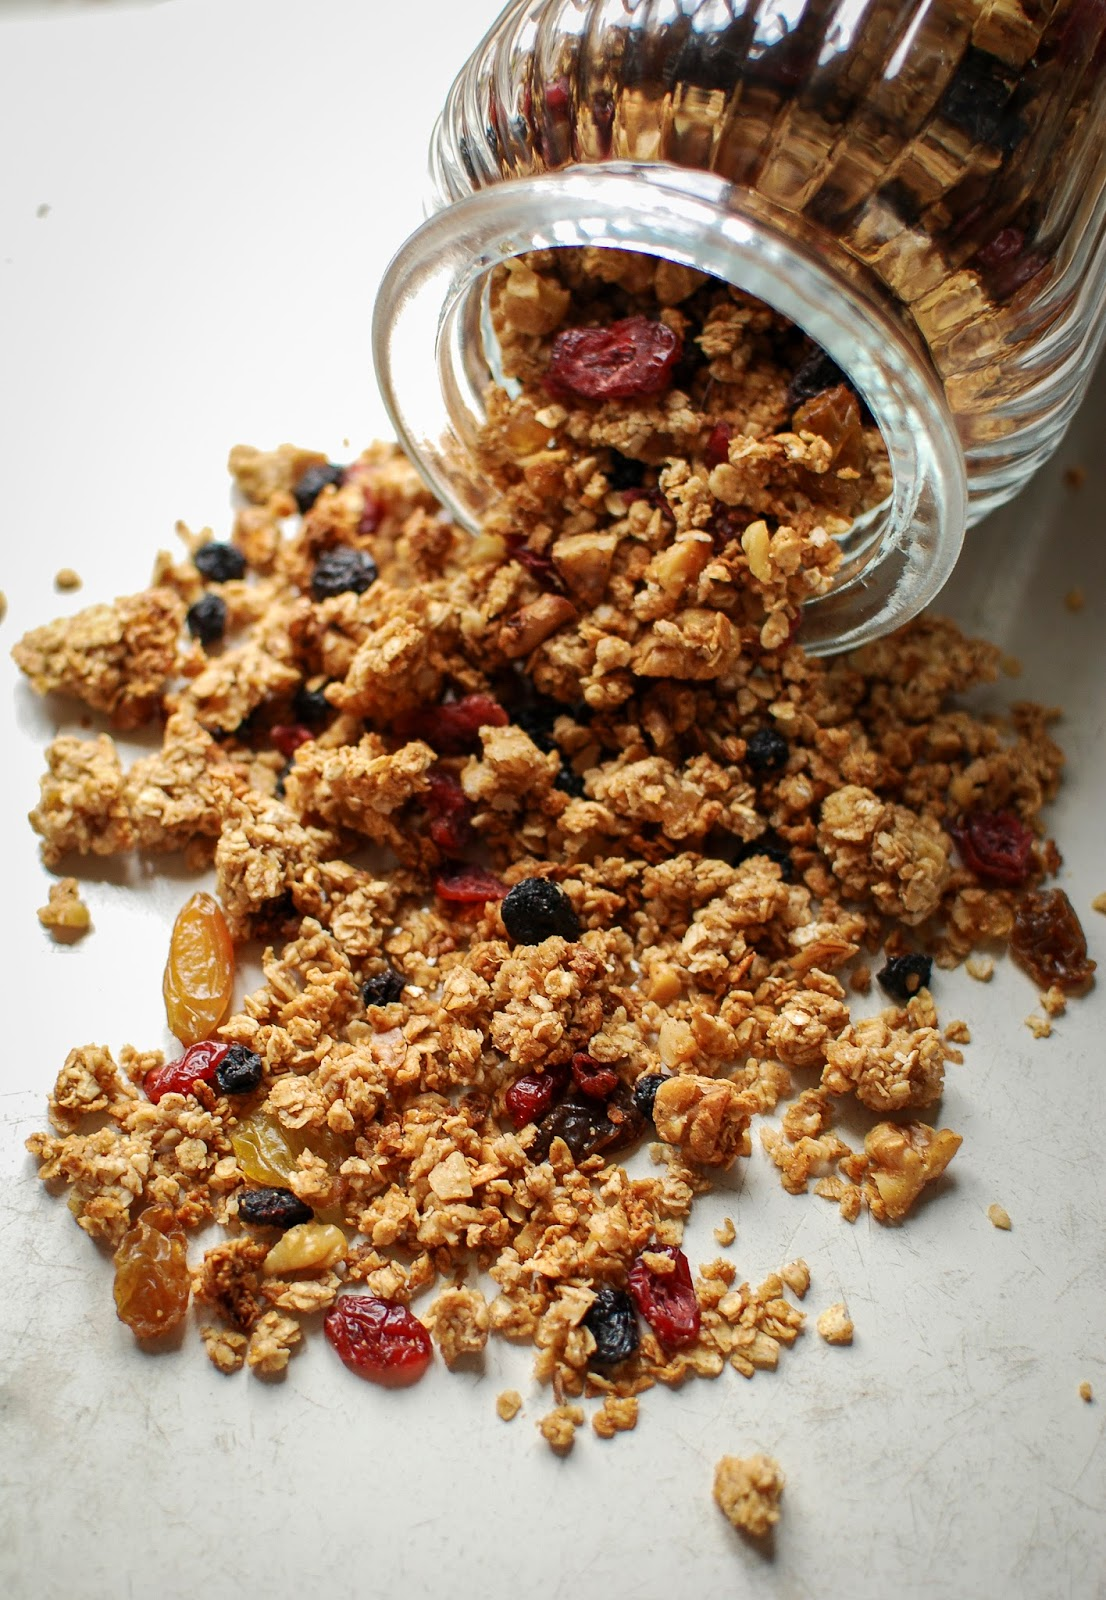 Whip up a batch of this delicous granola on a Sunday evening to keep you feed all week long.